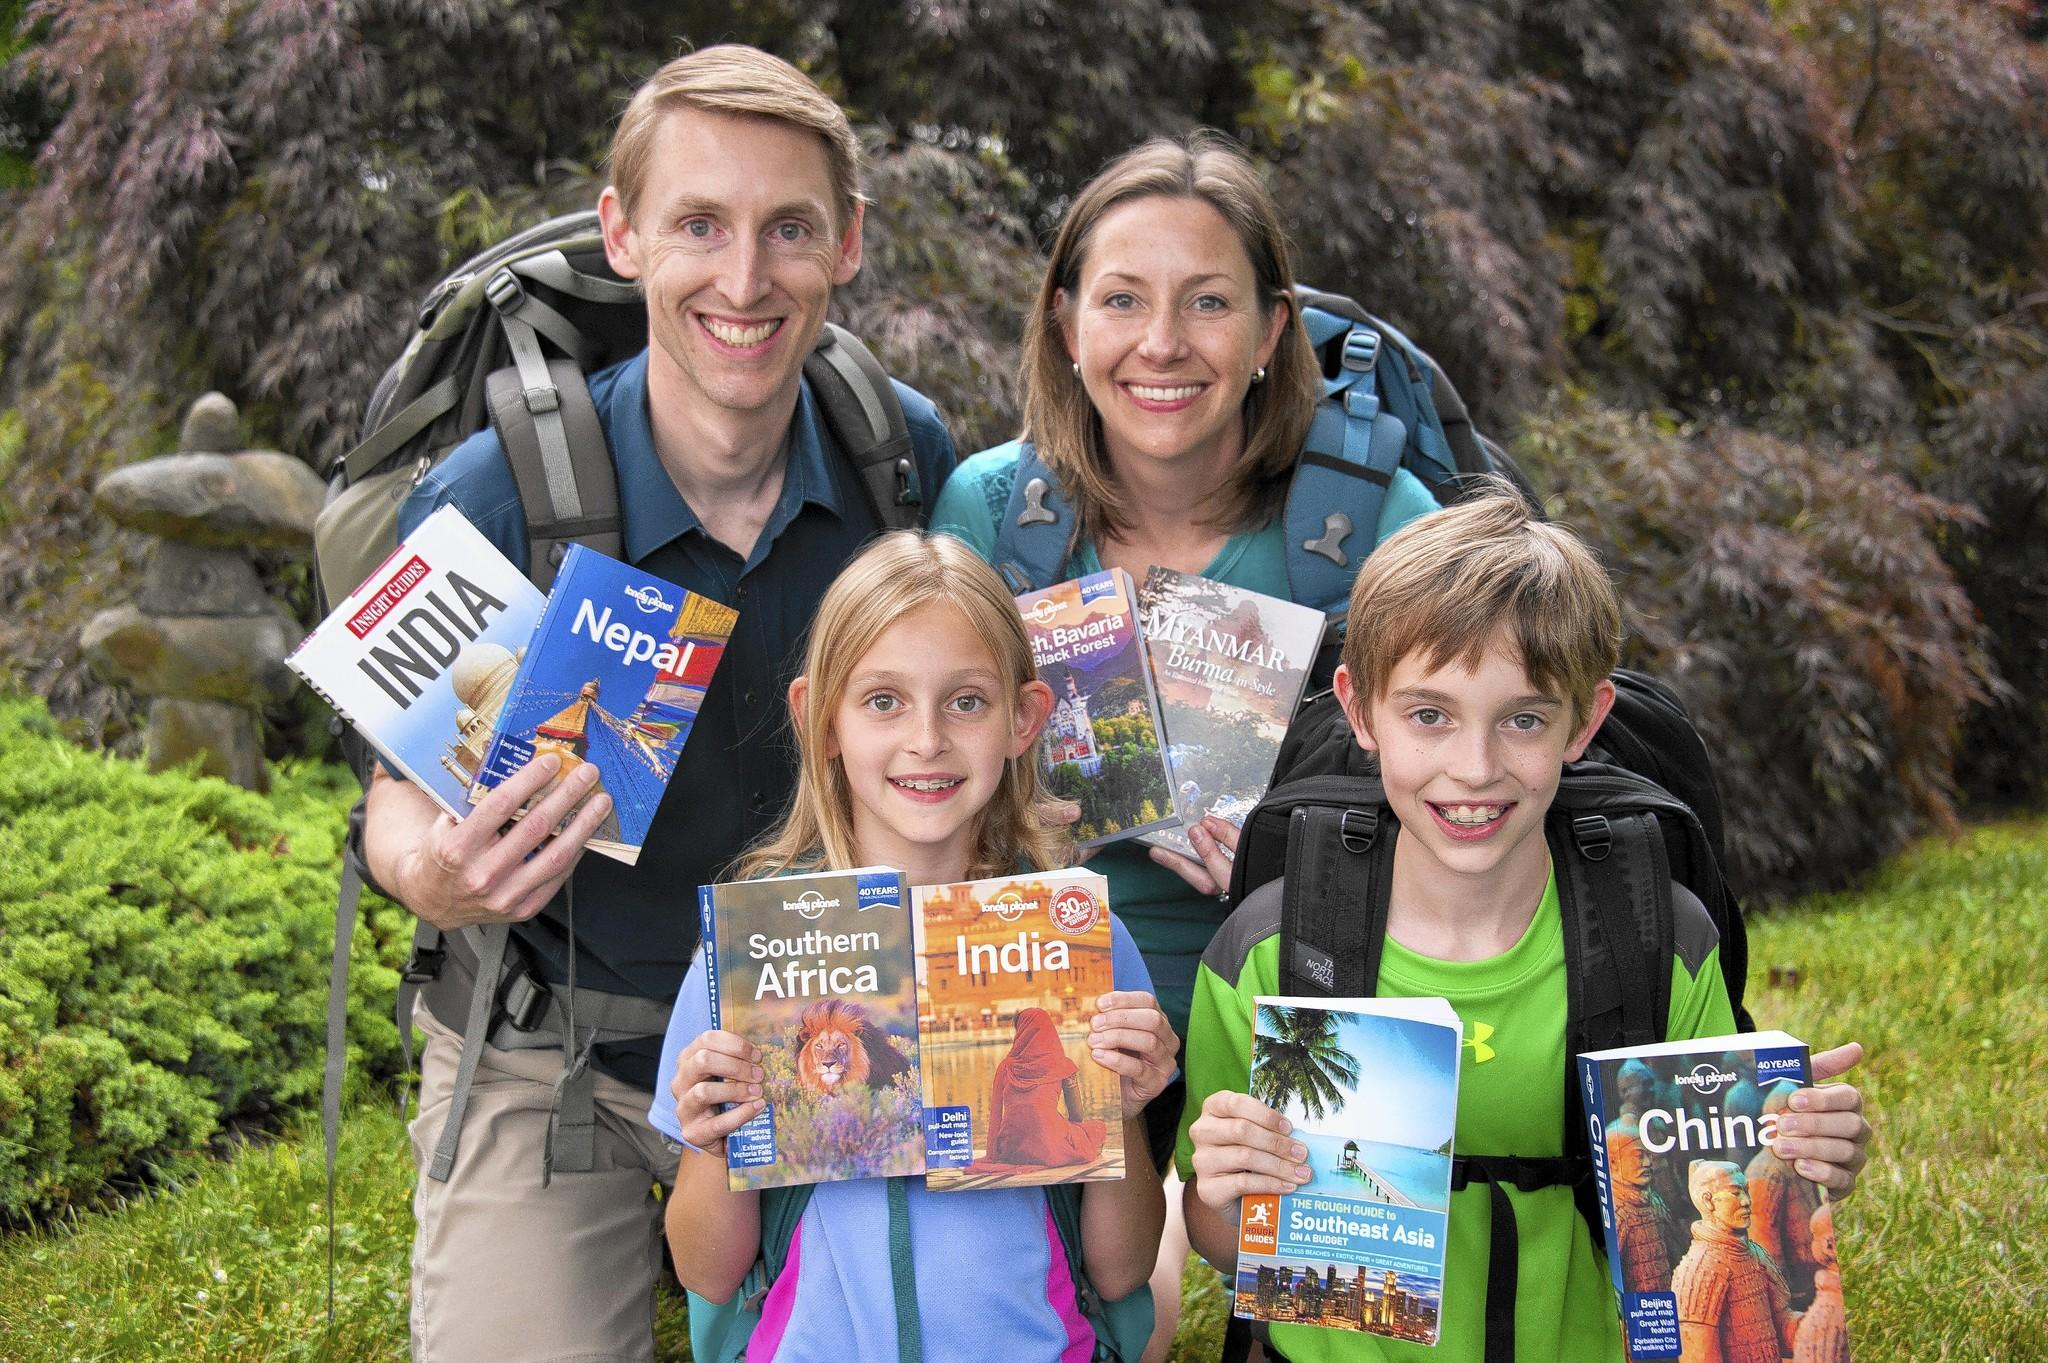 Julie and Tim Rivenbark with their children, Kara Rivenbark, 9 and Tyler Rivenbark, 11, talk about their upcoming world trip. The family plan to explore the world and blog about their experiences.